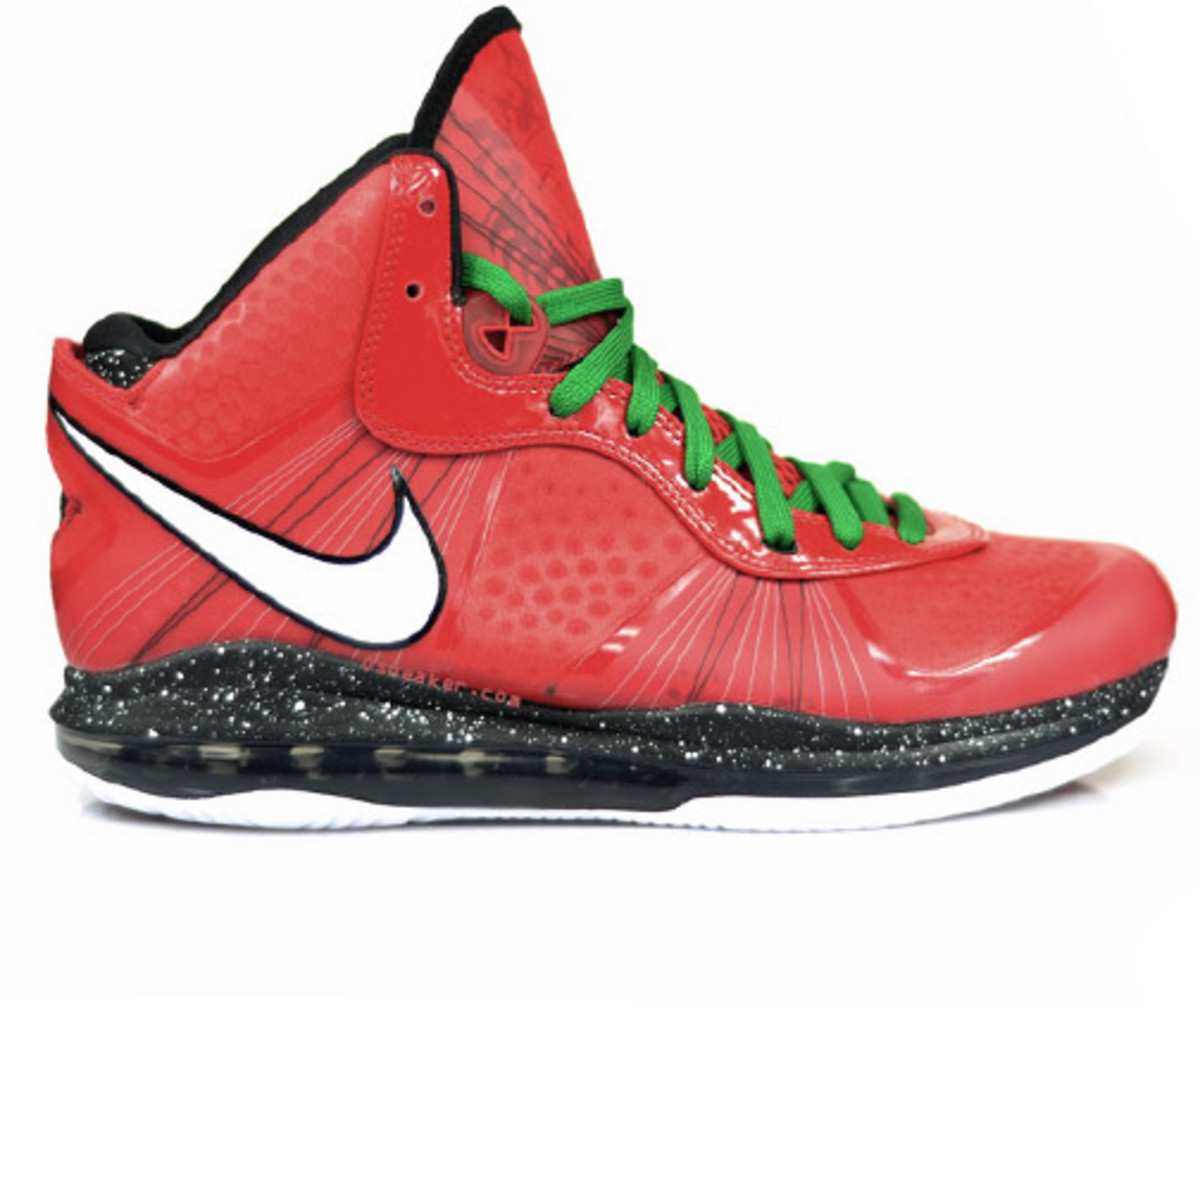 Red Nike Christmas Shoes